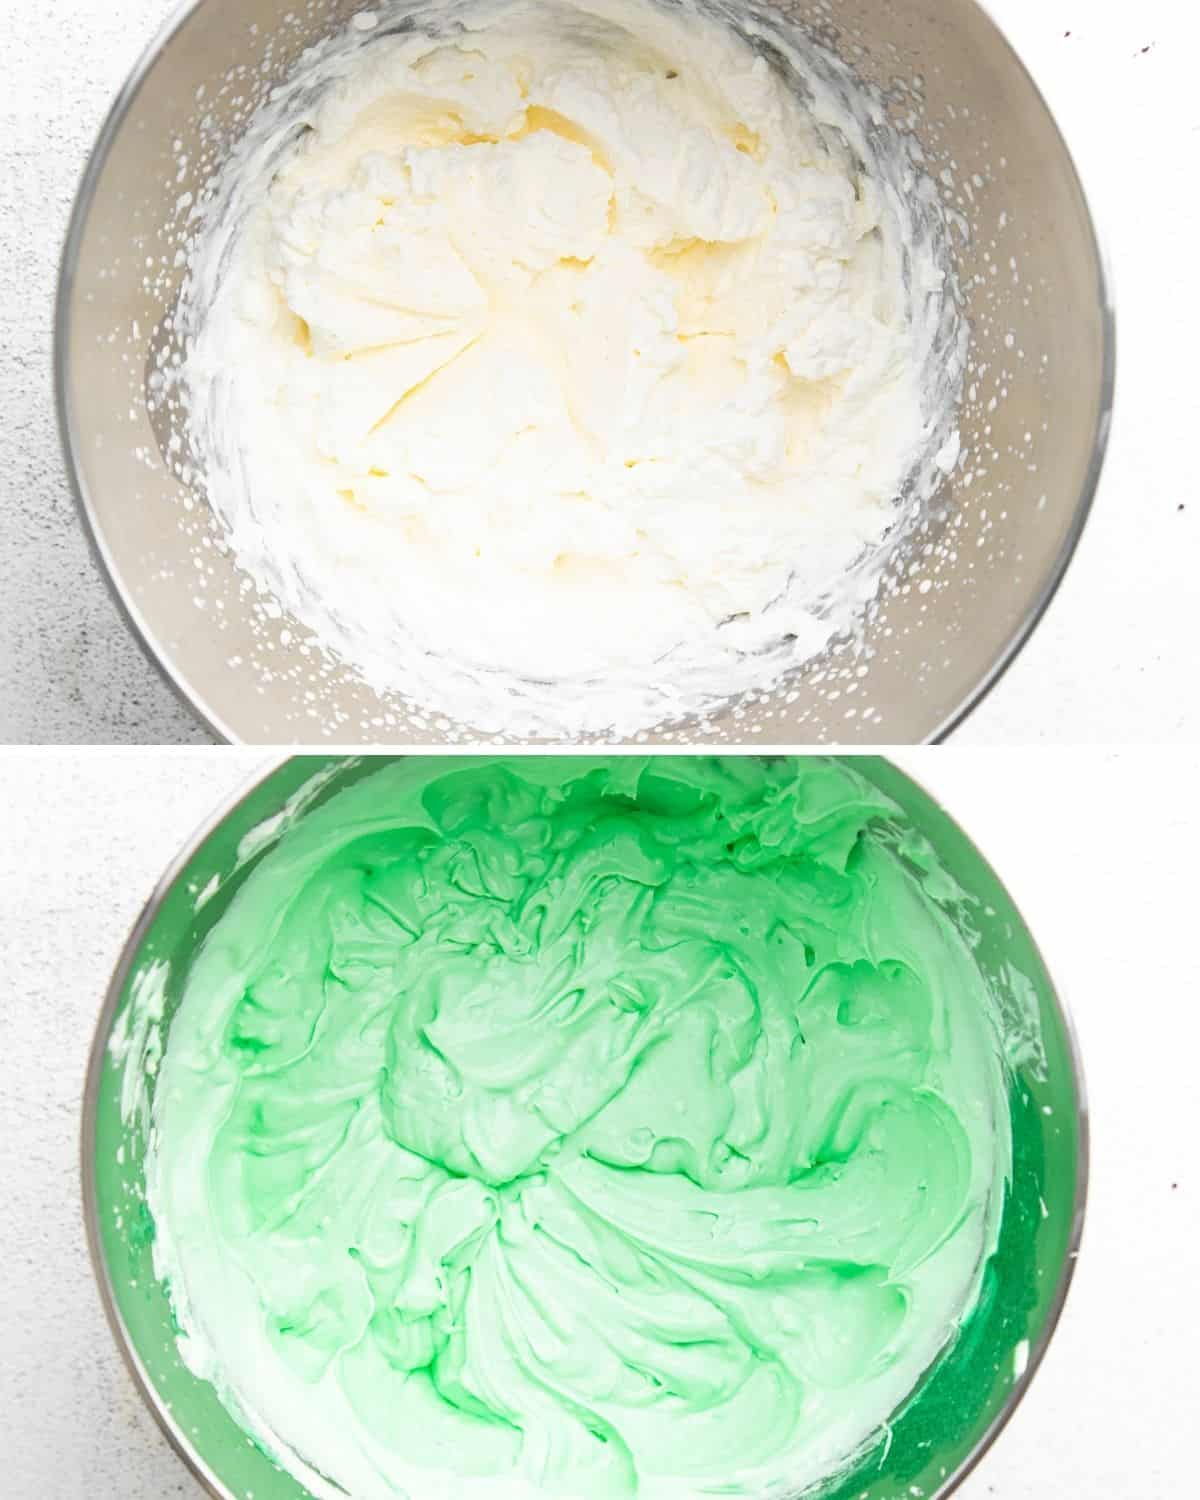 A collage, 1st photo, cream cheese in a silver bowl. 2nd photo the same bowl of cream cheese with a green tint from Creme de Menthe.